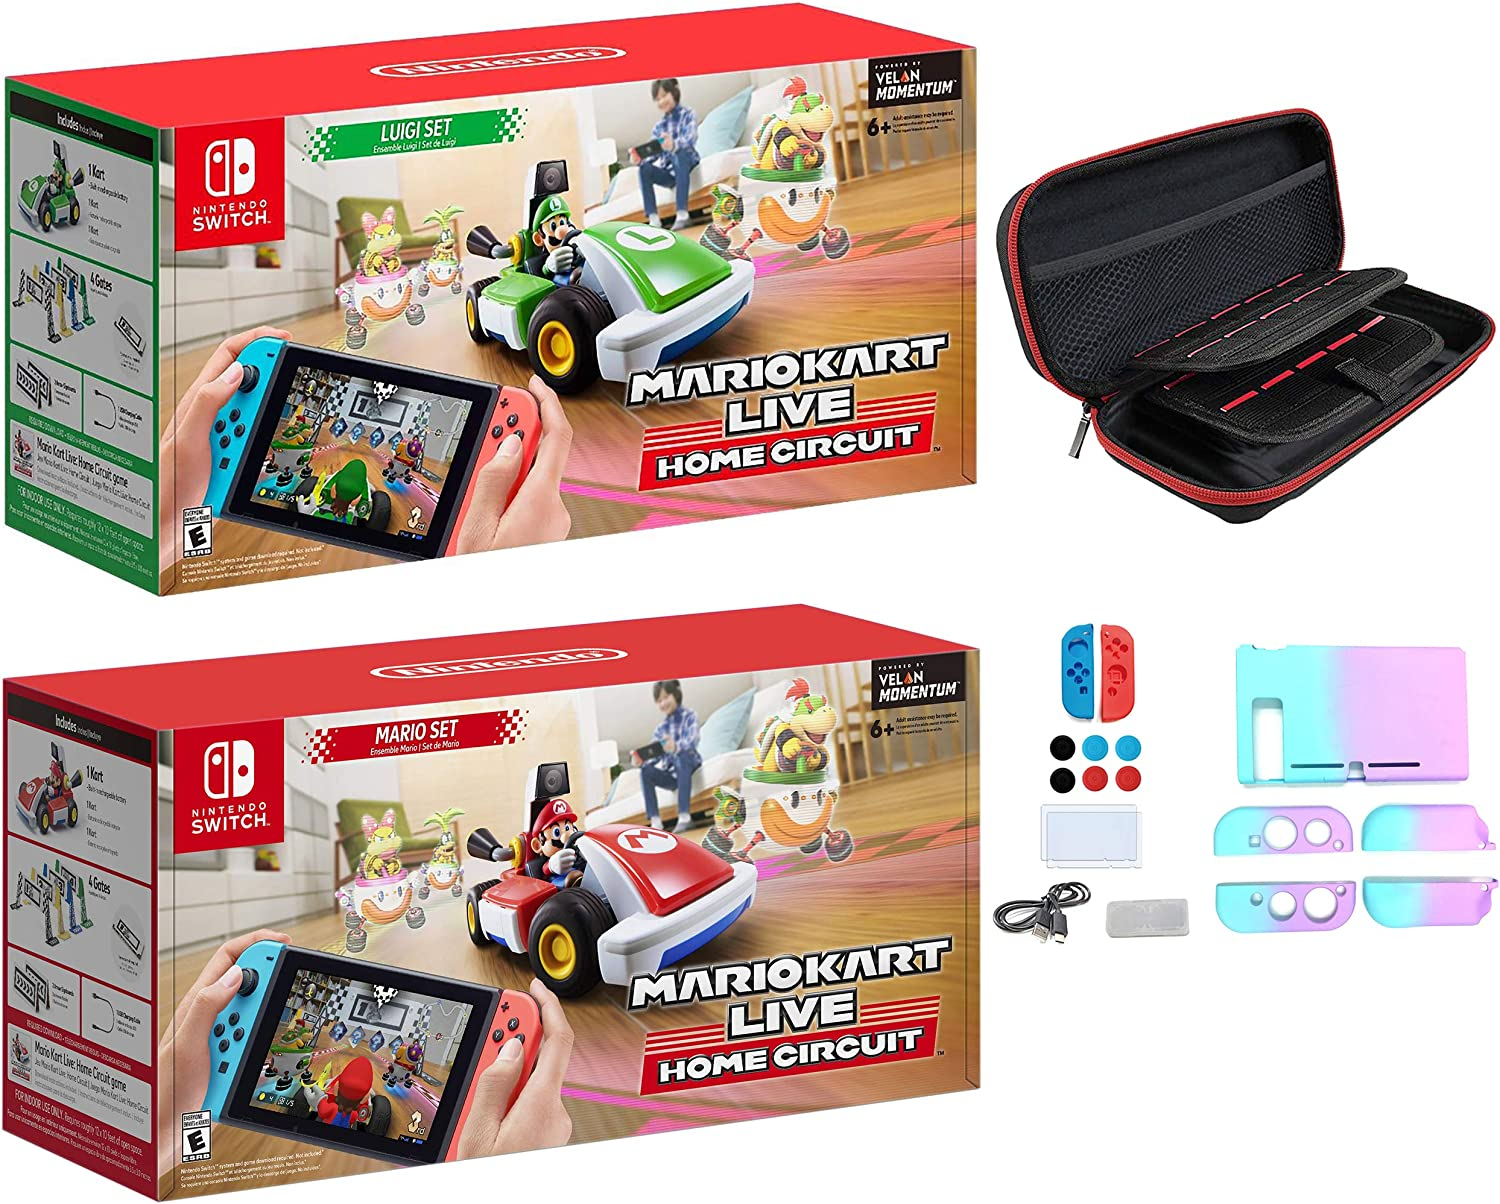 Nintendo 2020 Newest - Mario Kart Live: Home Circuit - Mario Set and Luigi Set Edition - Family Christmas Holiday Gaming for Switch or Switch Lite - iPuzzle 12-in-1 Carrying Case for Nintendo Switch